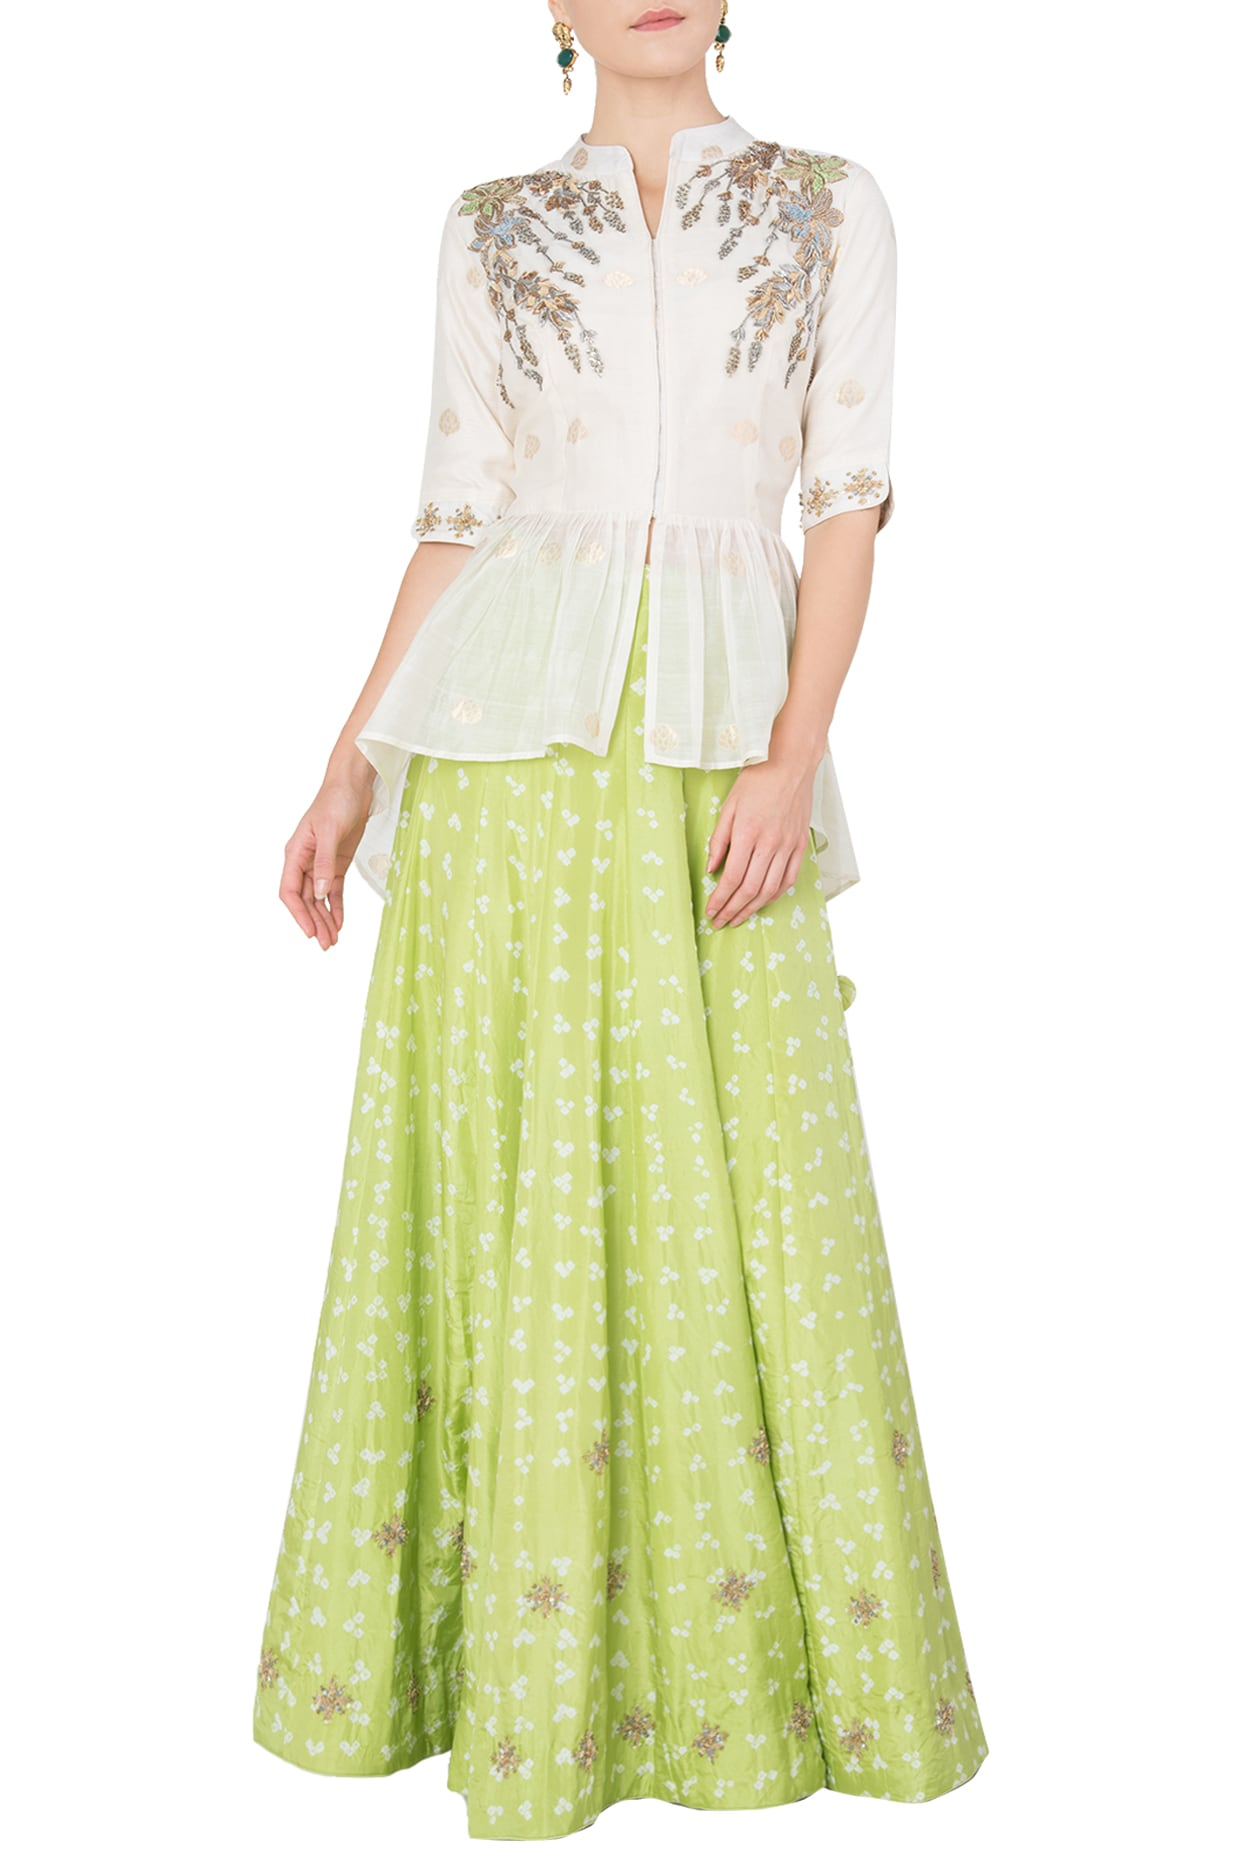 Off white embroidered peplum top with lime green lehenga skirt available  only at Pernia s Pop Up Shop. 3820f2847